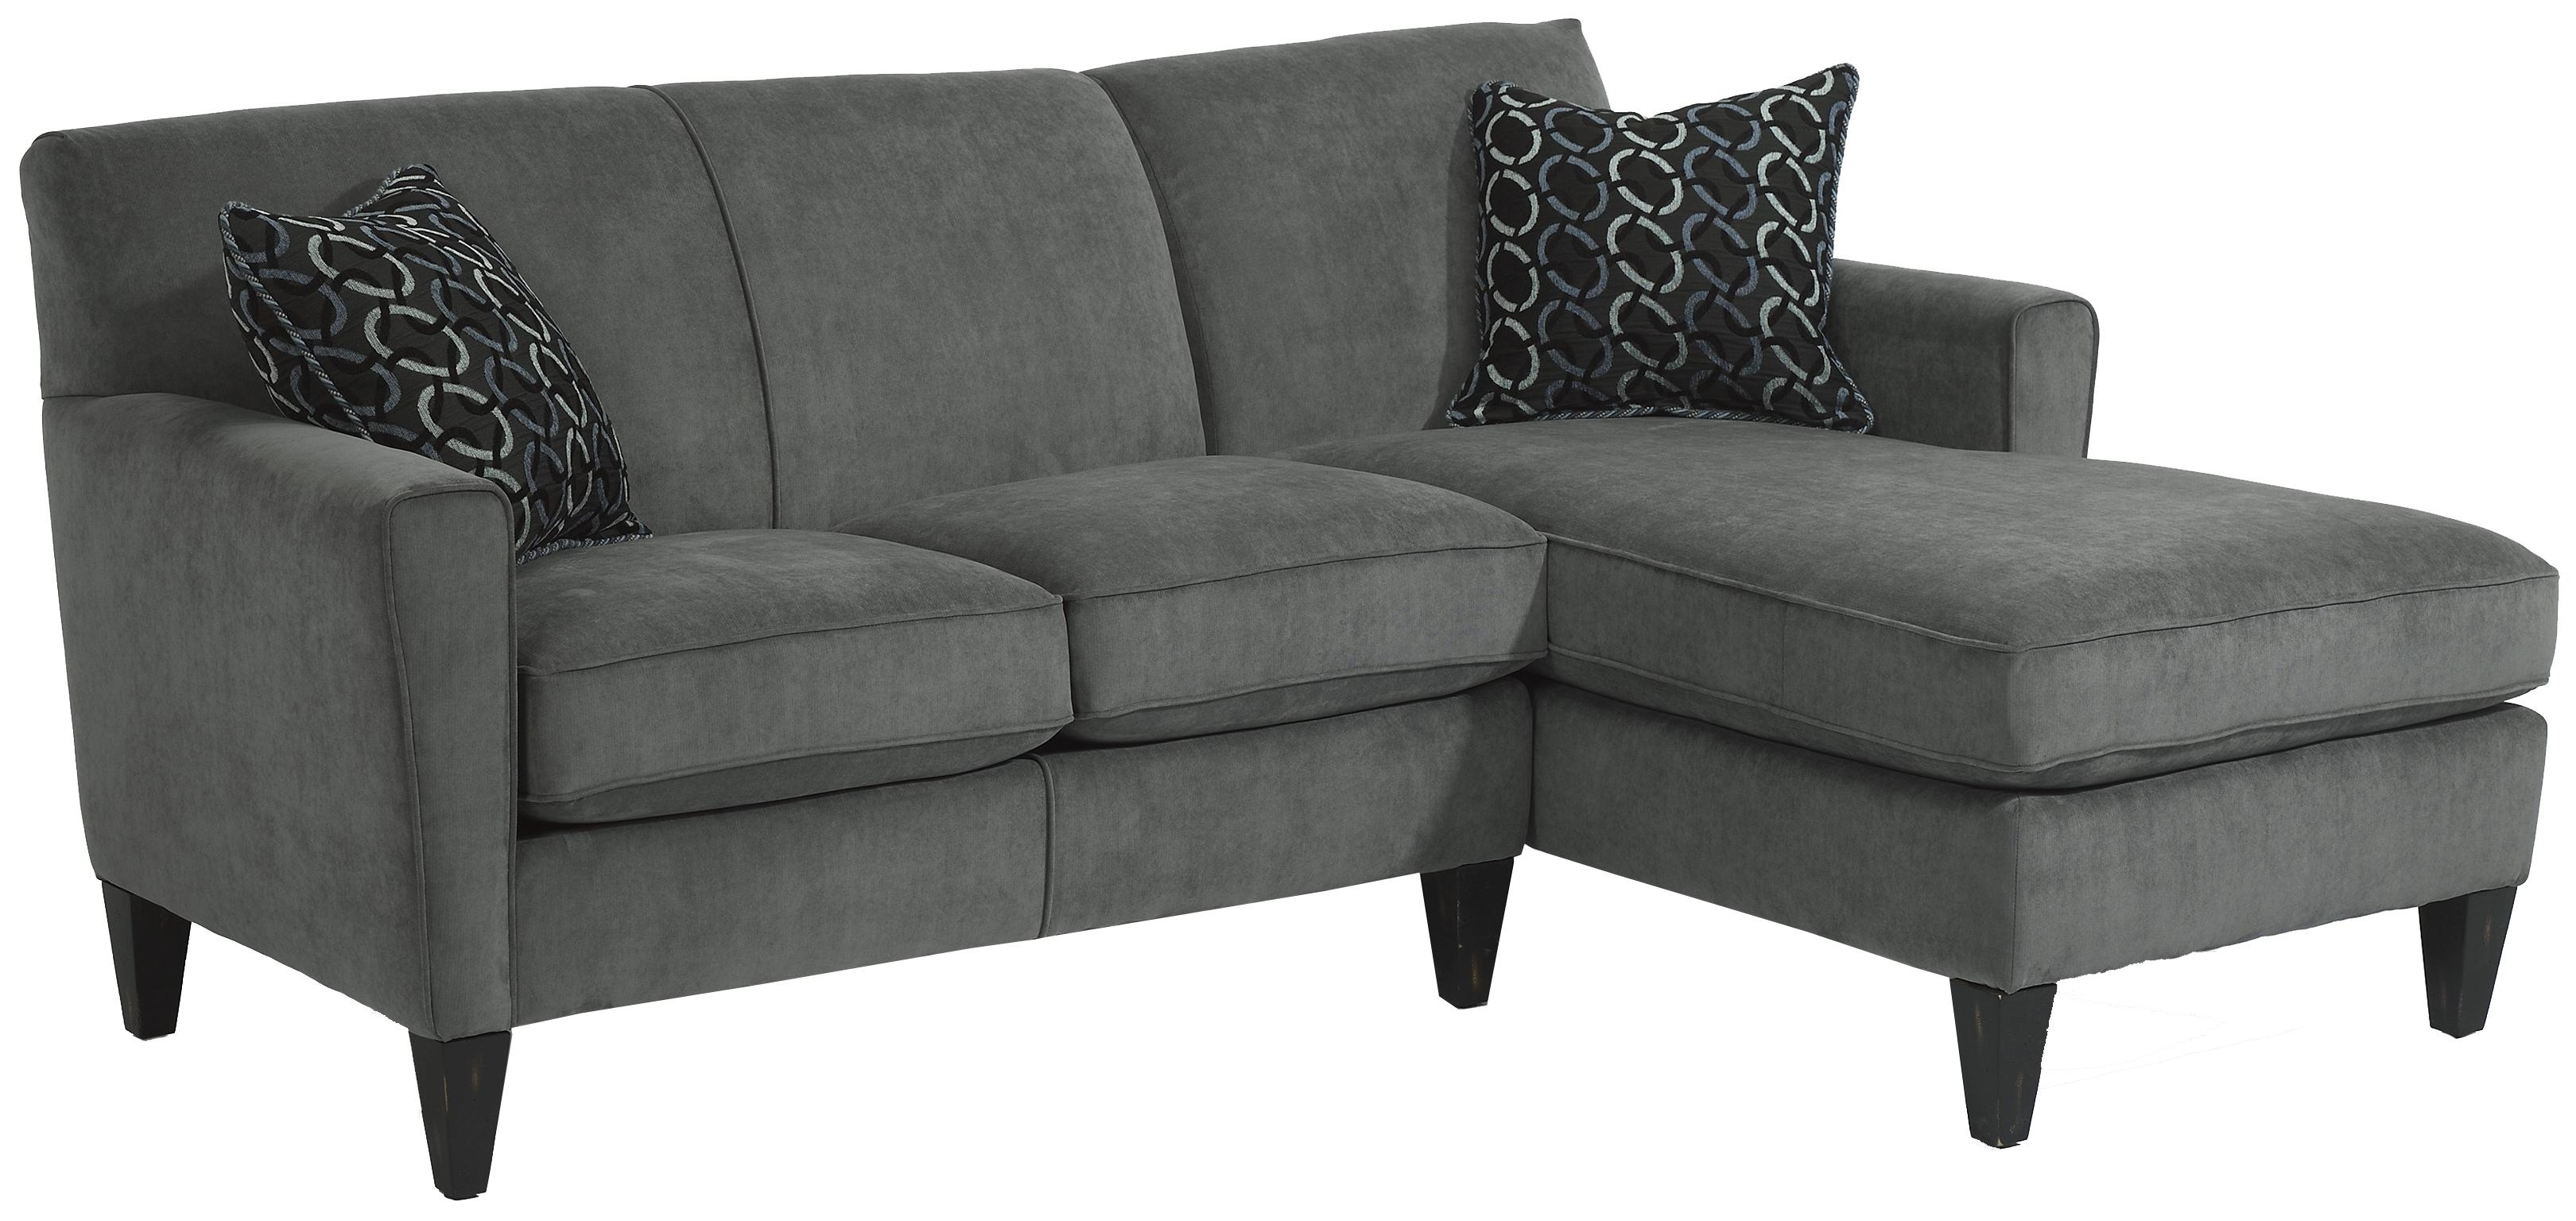 Flexsteel Digby Contemporary Sectional Sofa With Raf Chaise – Ahfa Inside Meyer 3 Piece Sectionals With Laf Chaise (View 15 of 25)